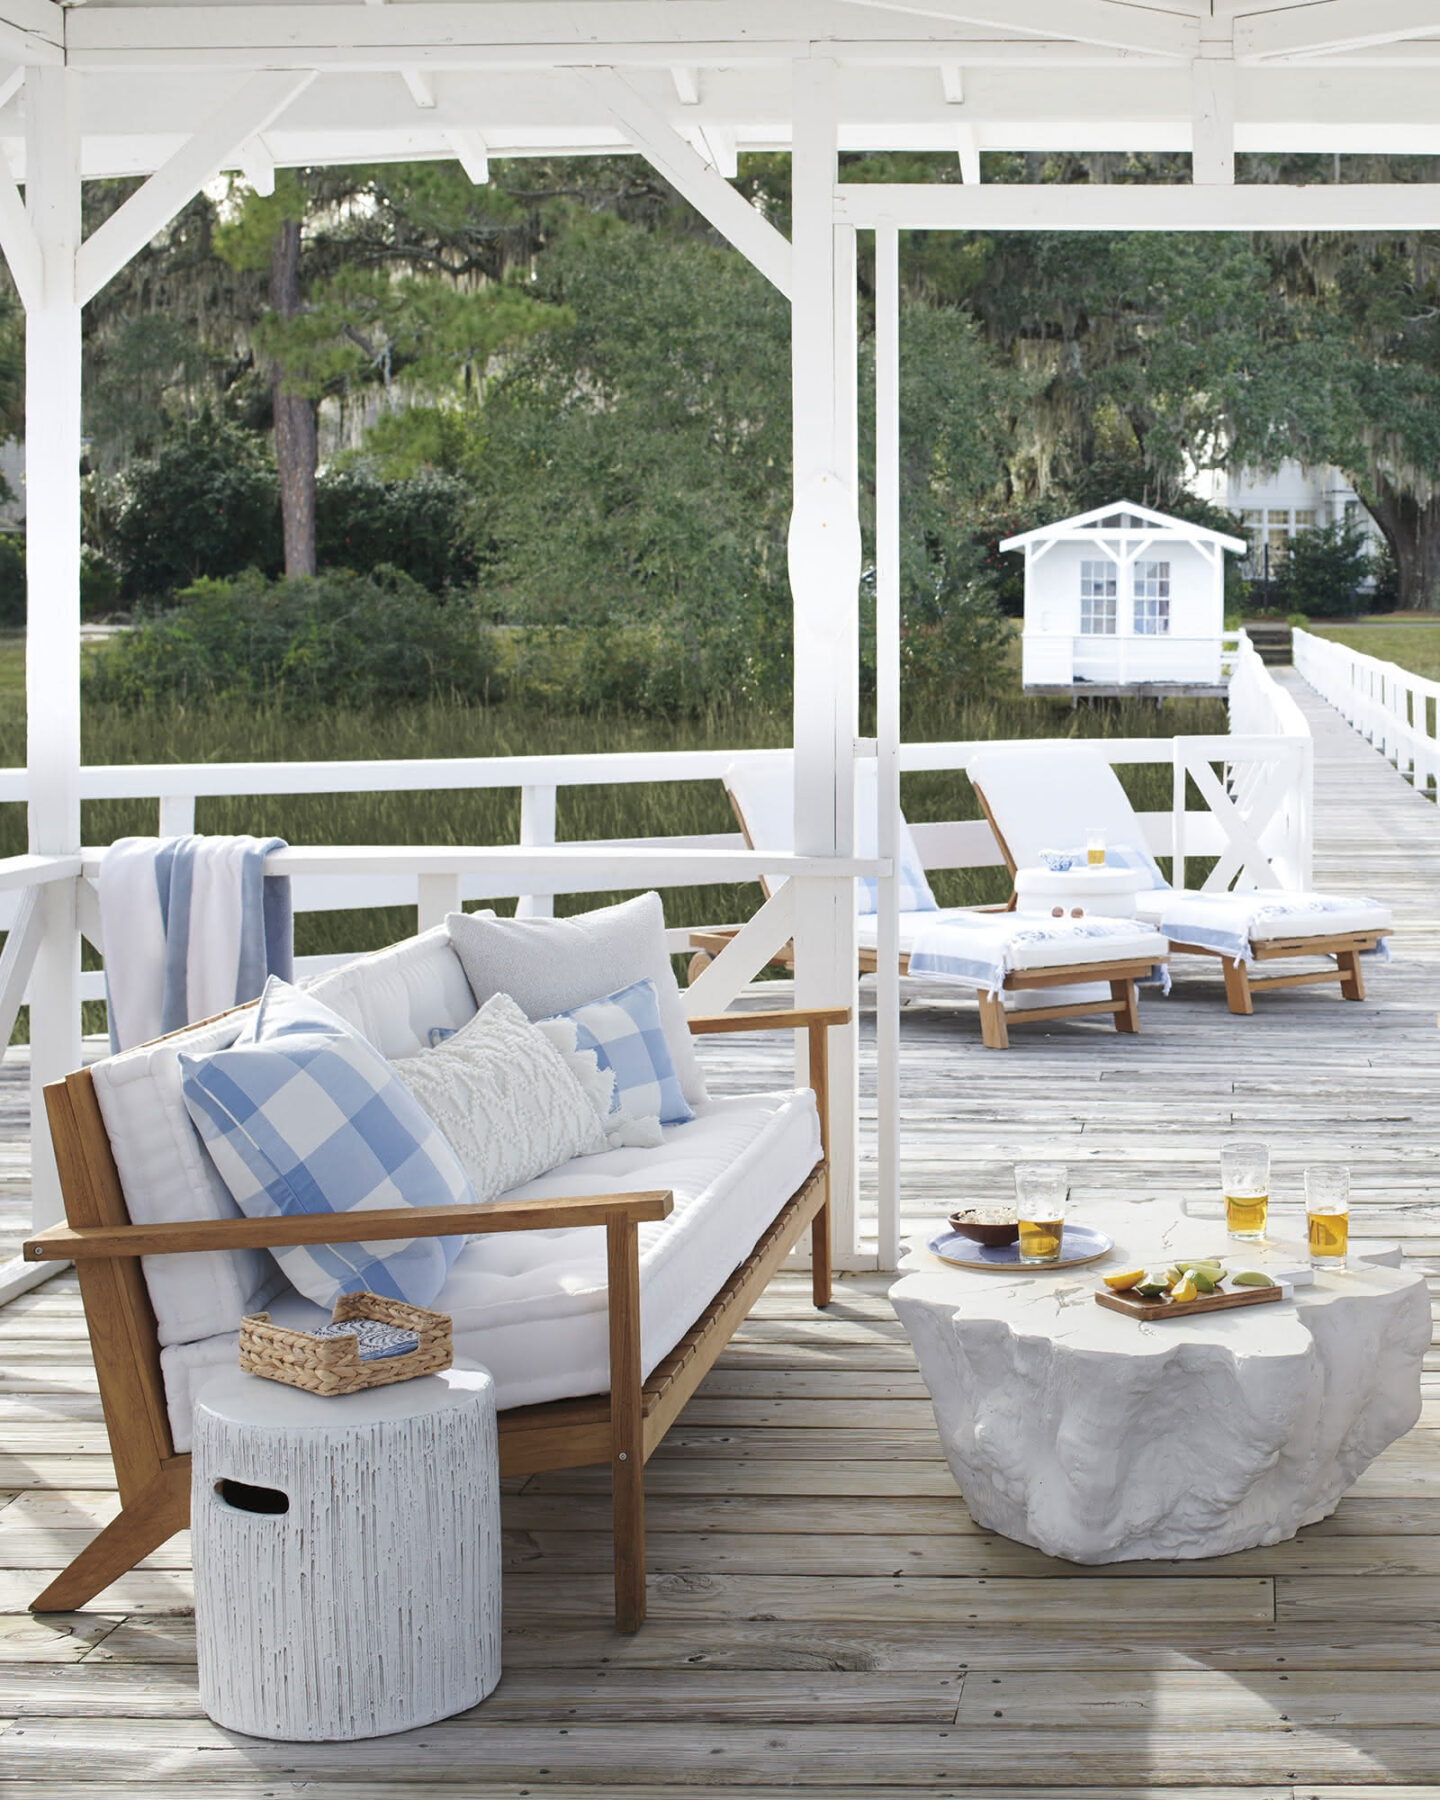 Coastal design inspiration on this porch with Serena & Lily blue check pillows and furniture. #serenanadlily #coastalstyle #porchdecor #homedecor #furniture #summerliving #outdoorliving